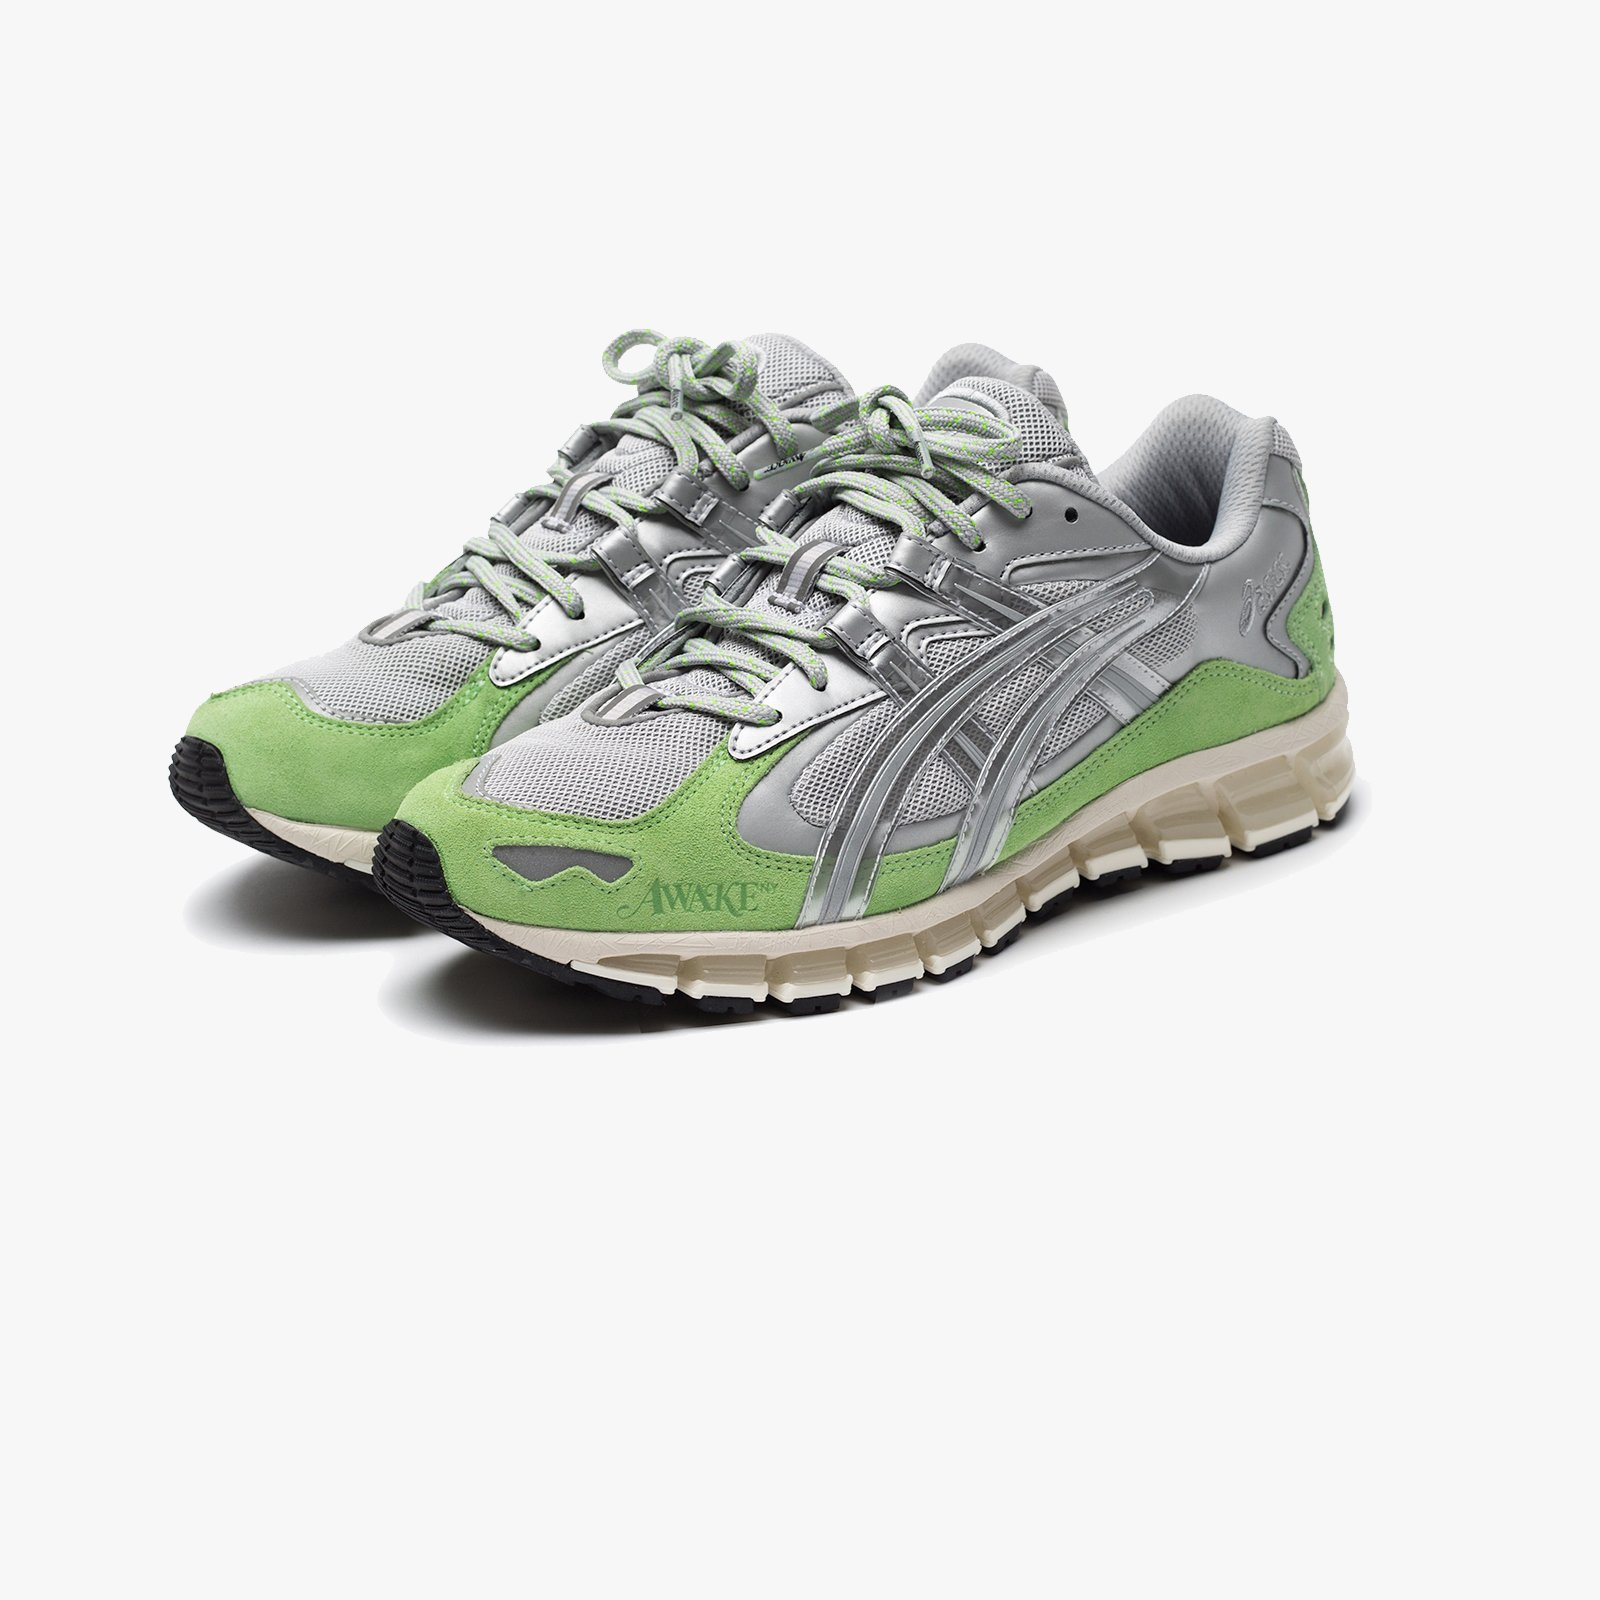 asics tiger gel kayano 5 360 gore tex